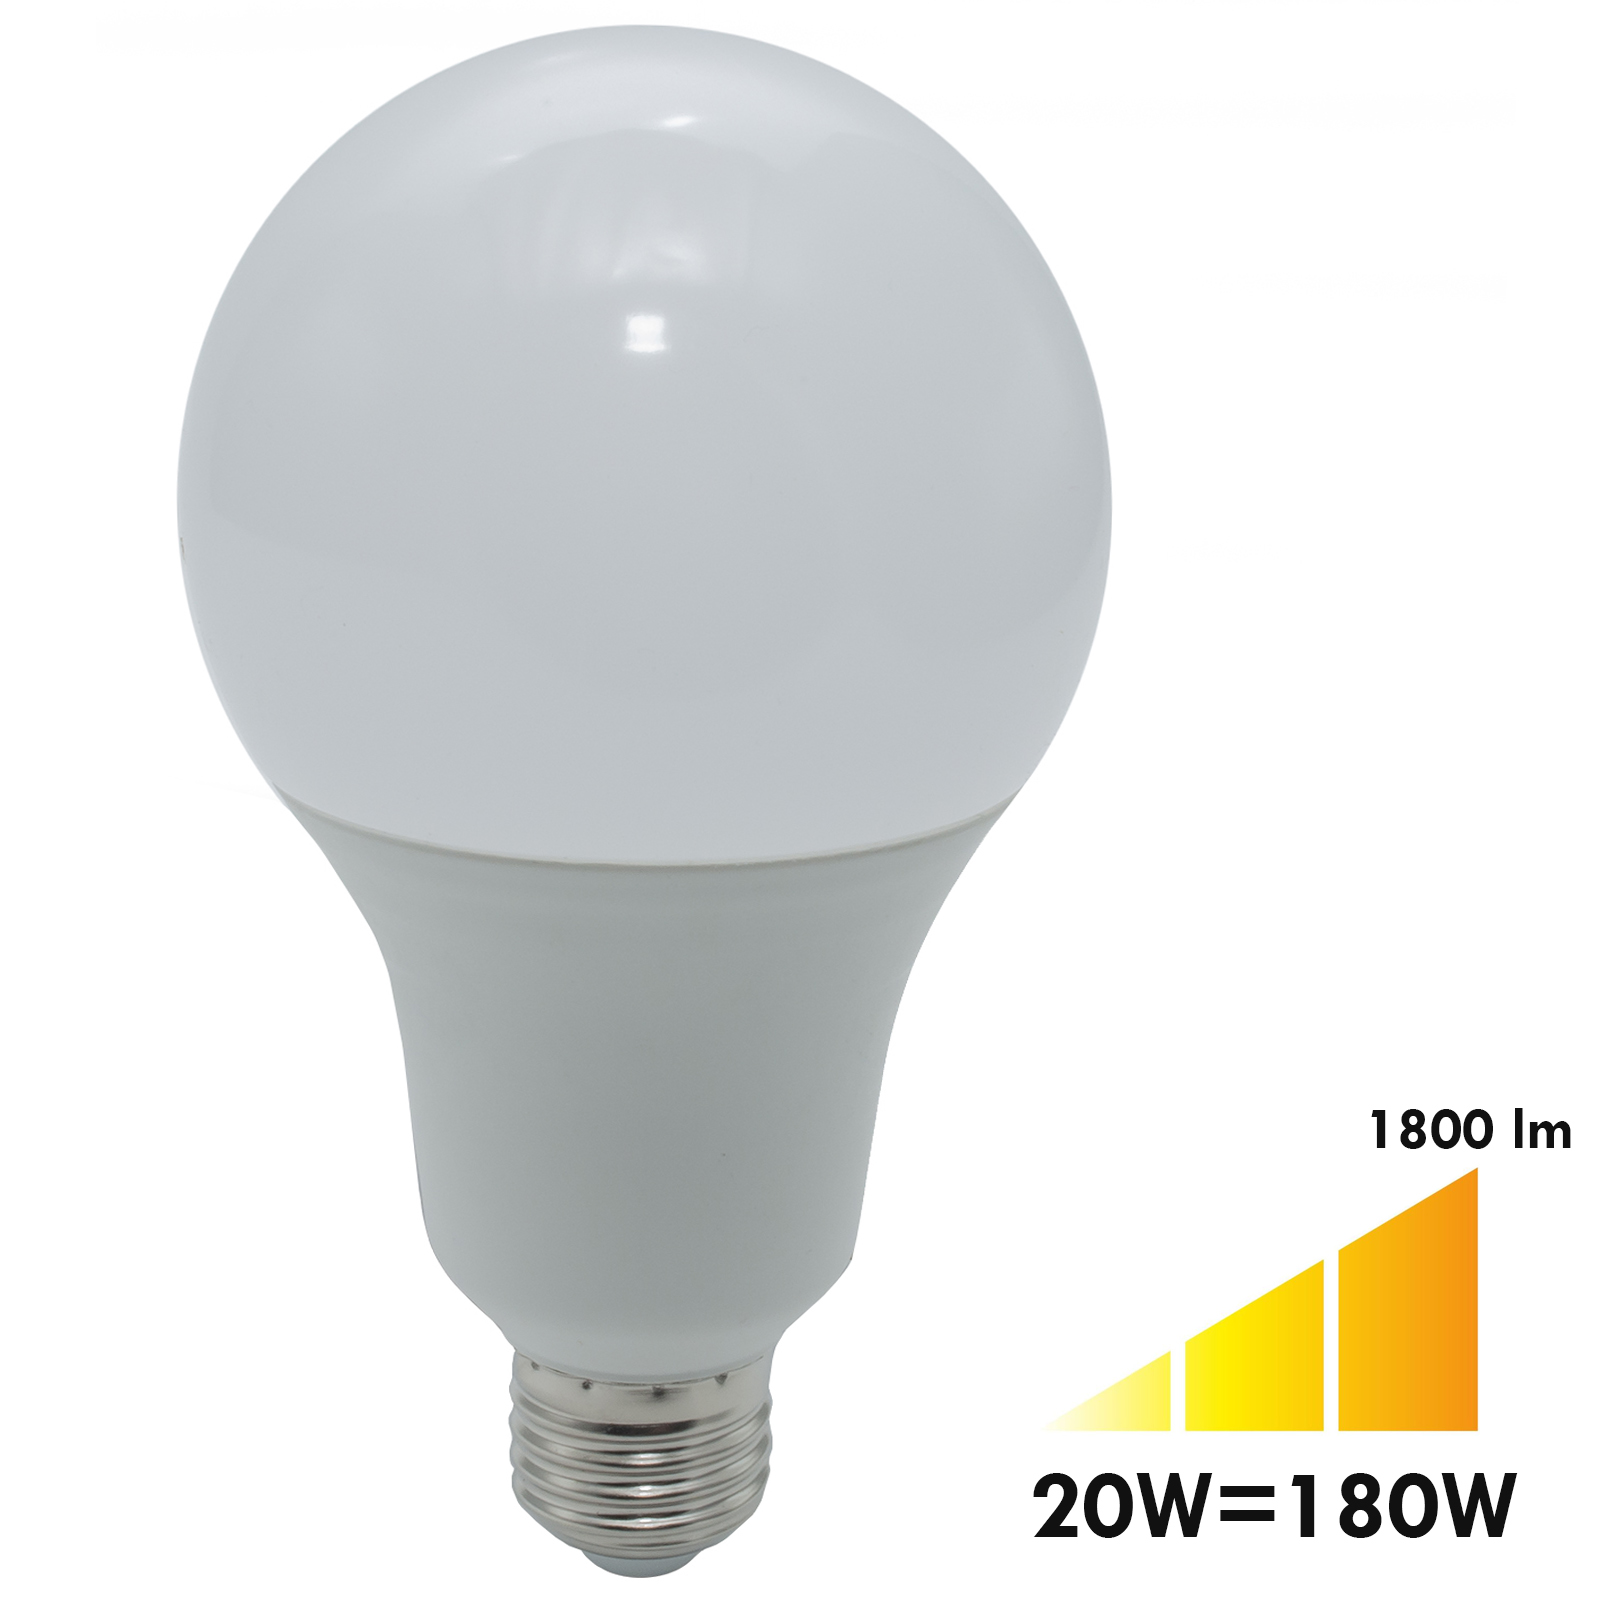 LED lamp 20W yield 180W bulb E27 A80 1800 lumen 3000K 4000K 230V